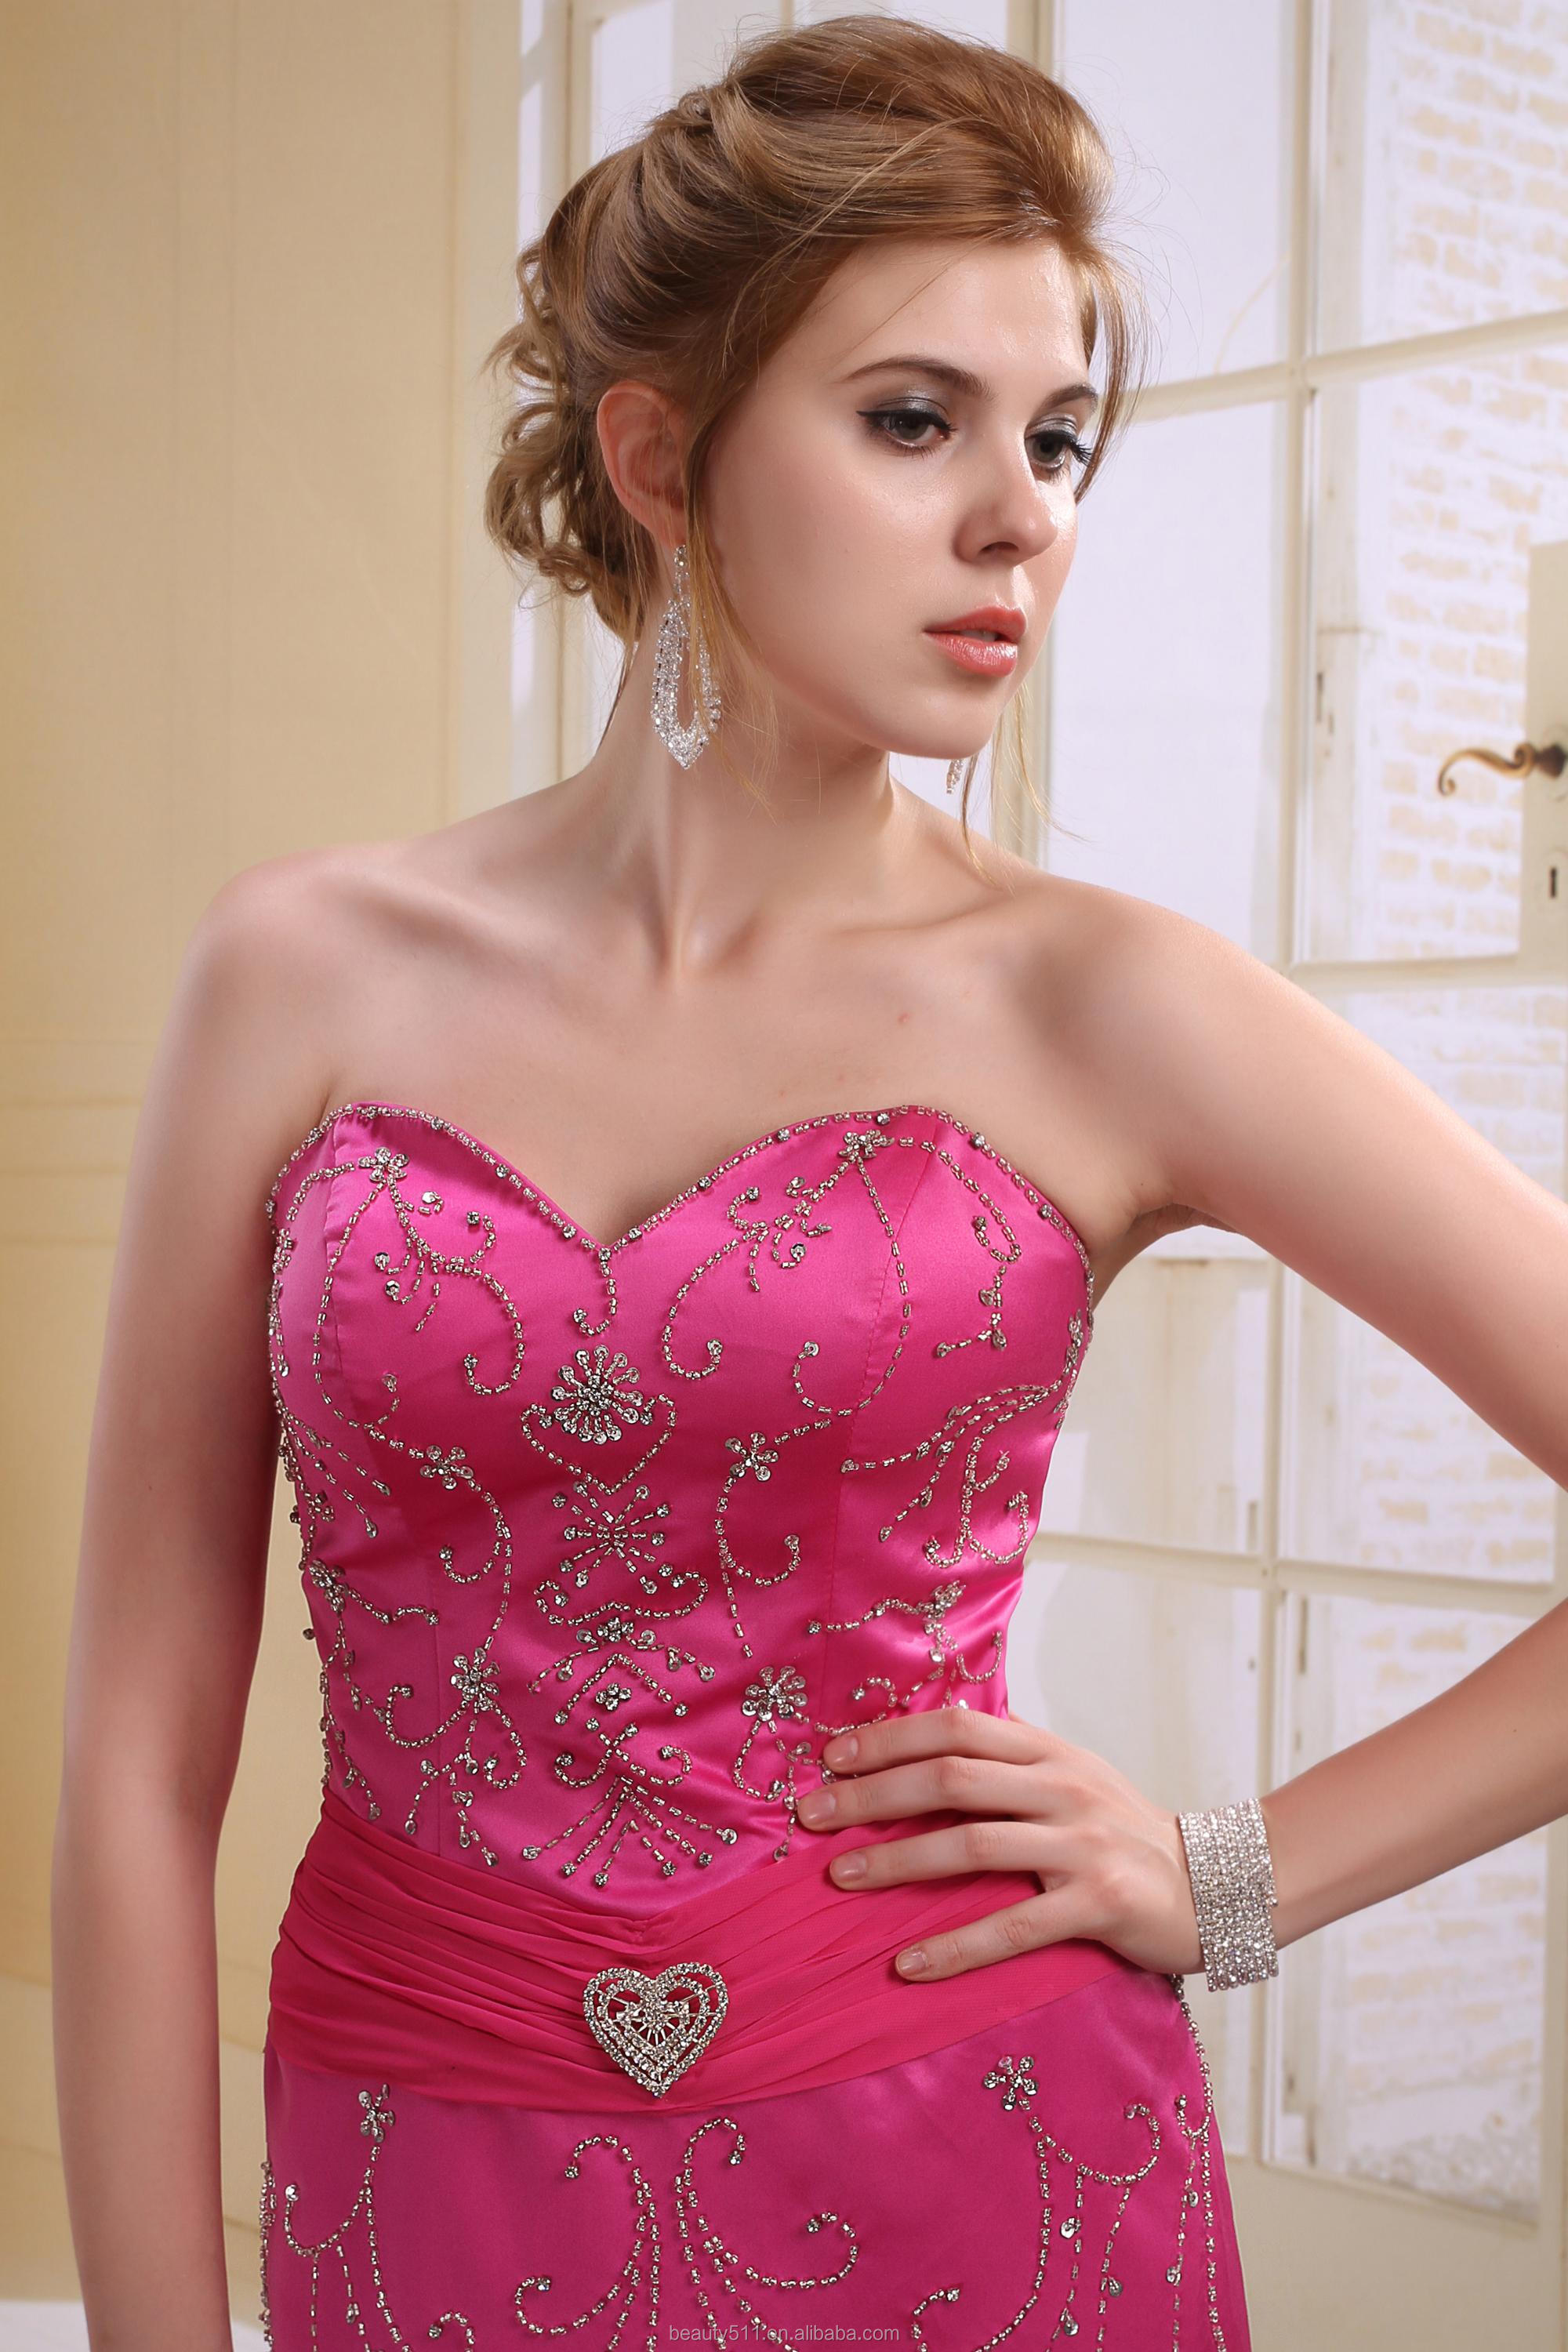 A-line Princess High Neck Asymmetrical Sweep Party Prom Formal Evening Holiday Dress X251